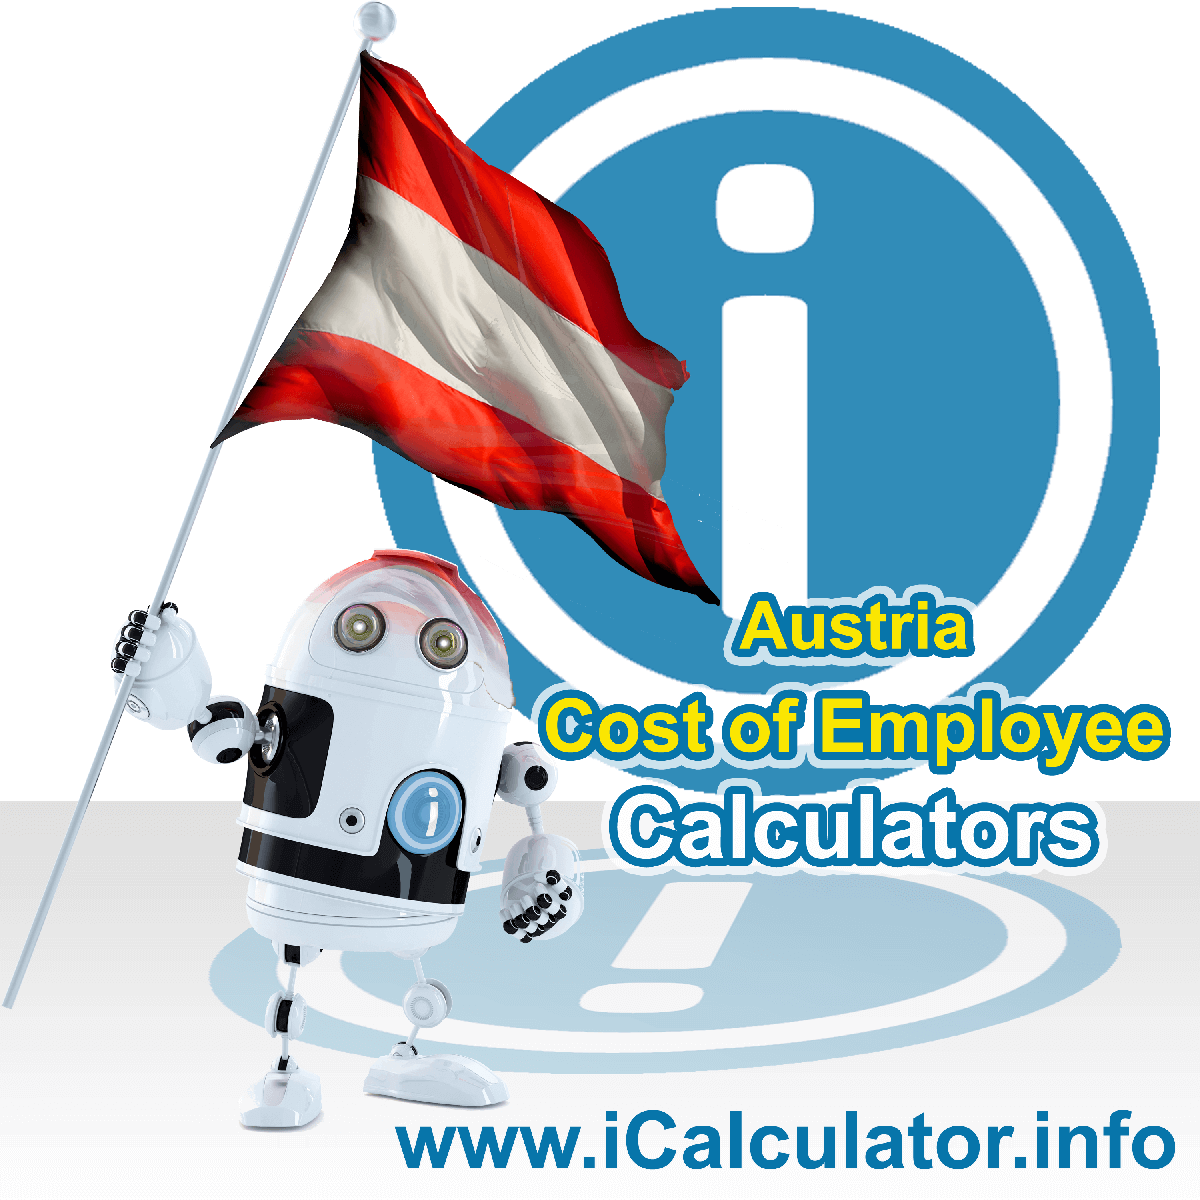 Austria Payroll Calculator. This image shows a new employer in Austria looking at payroll and human resource services in Austria as they want to hire an employee in Austria but are not sure of the employment costs. So, they make use of the Austria payroll calculator to understand their employment cost in Austria in 2020